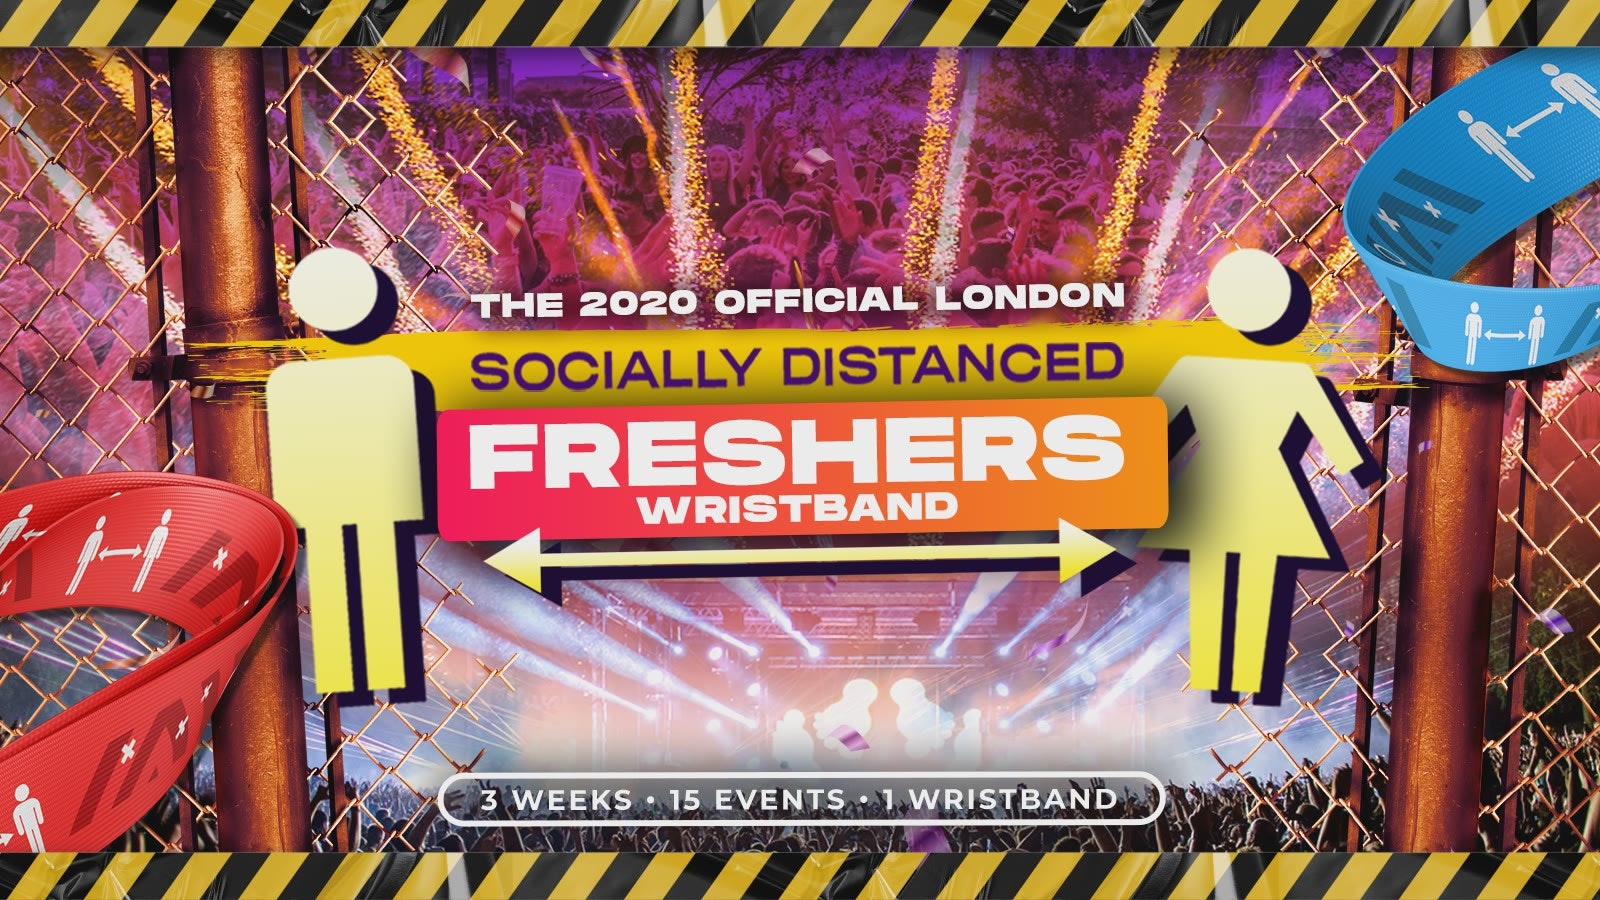 The 2020 Official London Socially Distanced Freshers Wristband (ALL EVENTS ARE GOING AHEAD AS PLANNED!!)